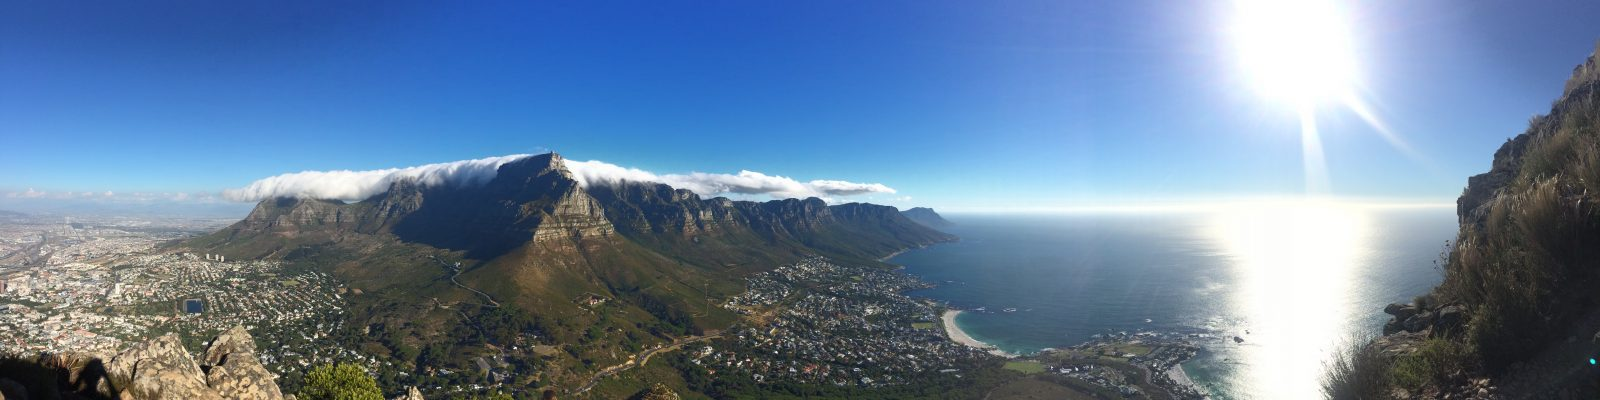 Table Mountain, Cape Town, Landscape, Julia Maurer